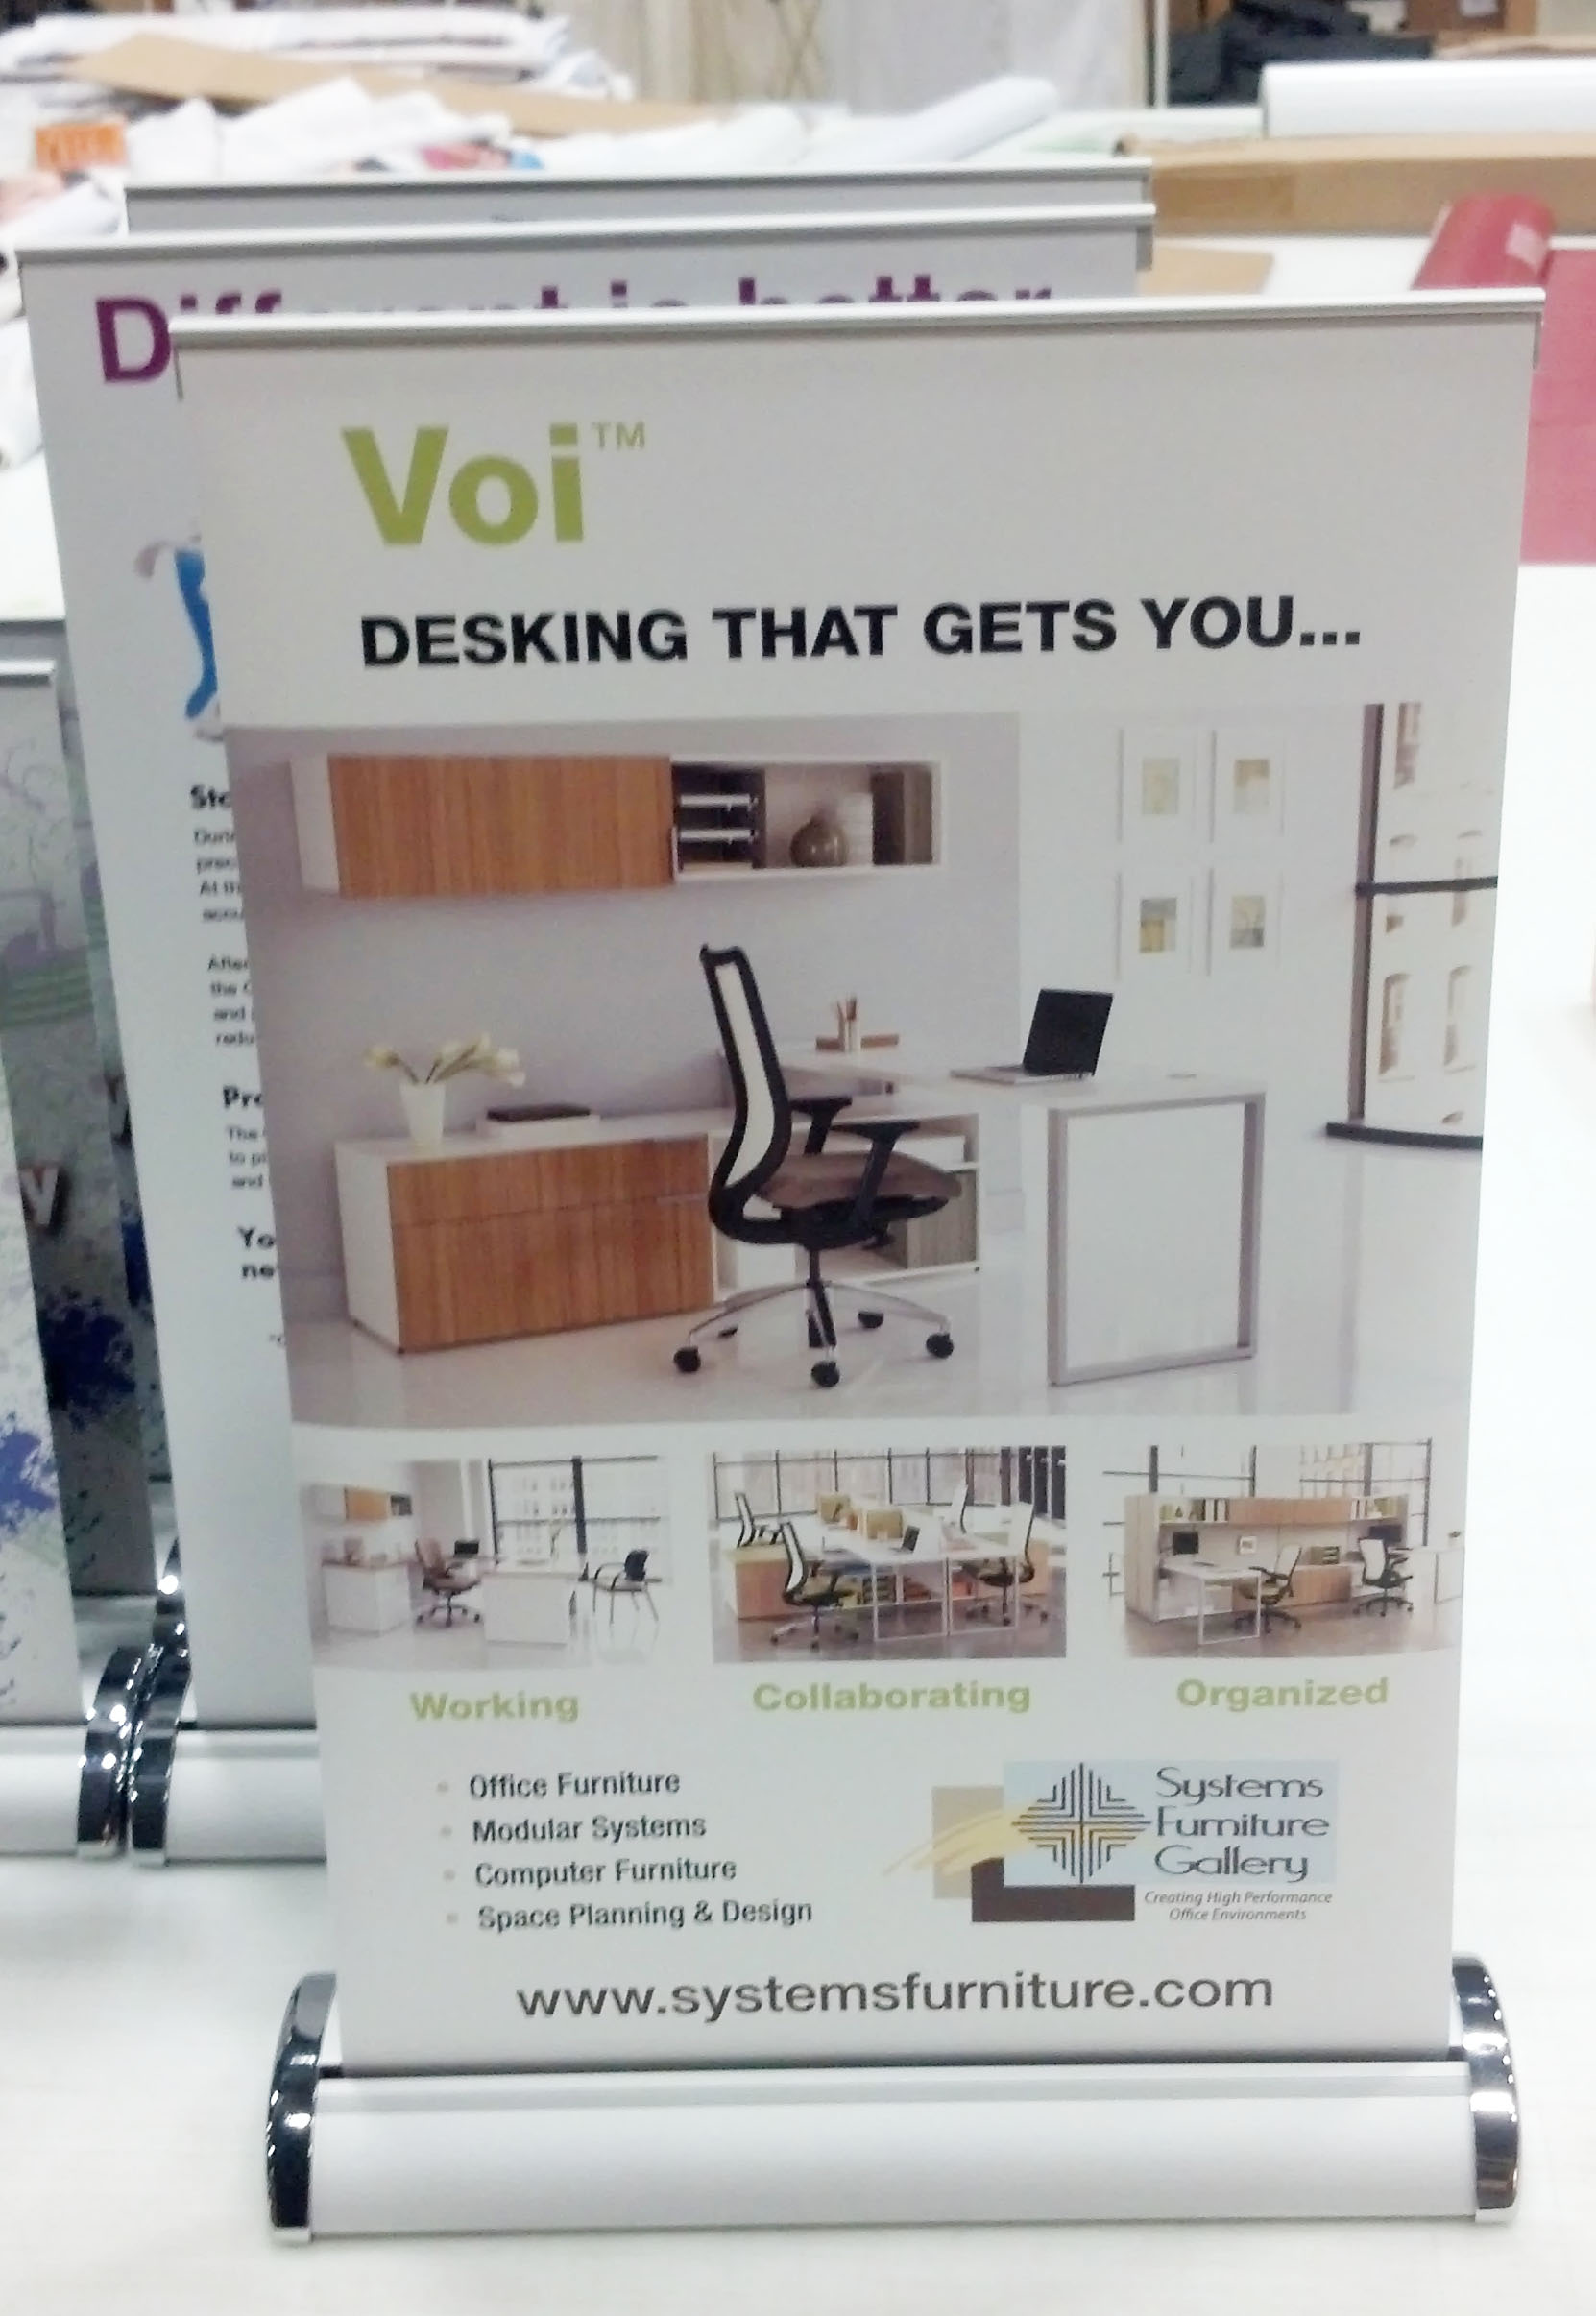 office furniture trade shows. systems furniture gallery chantilly va see more banner stands office trade shows f